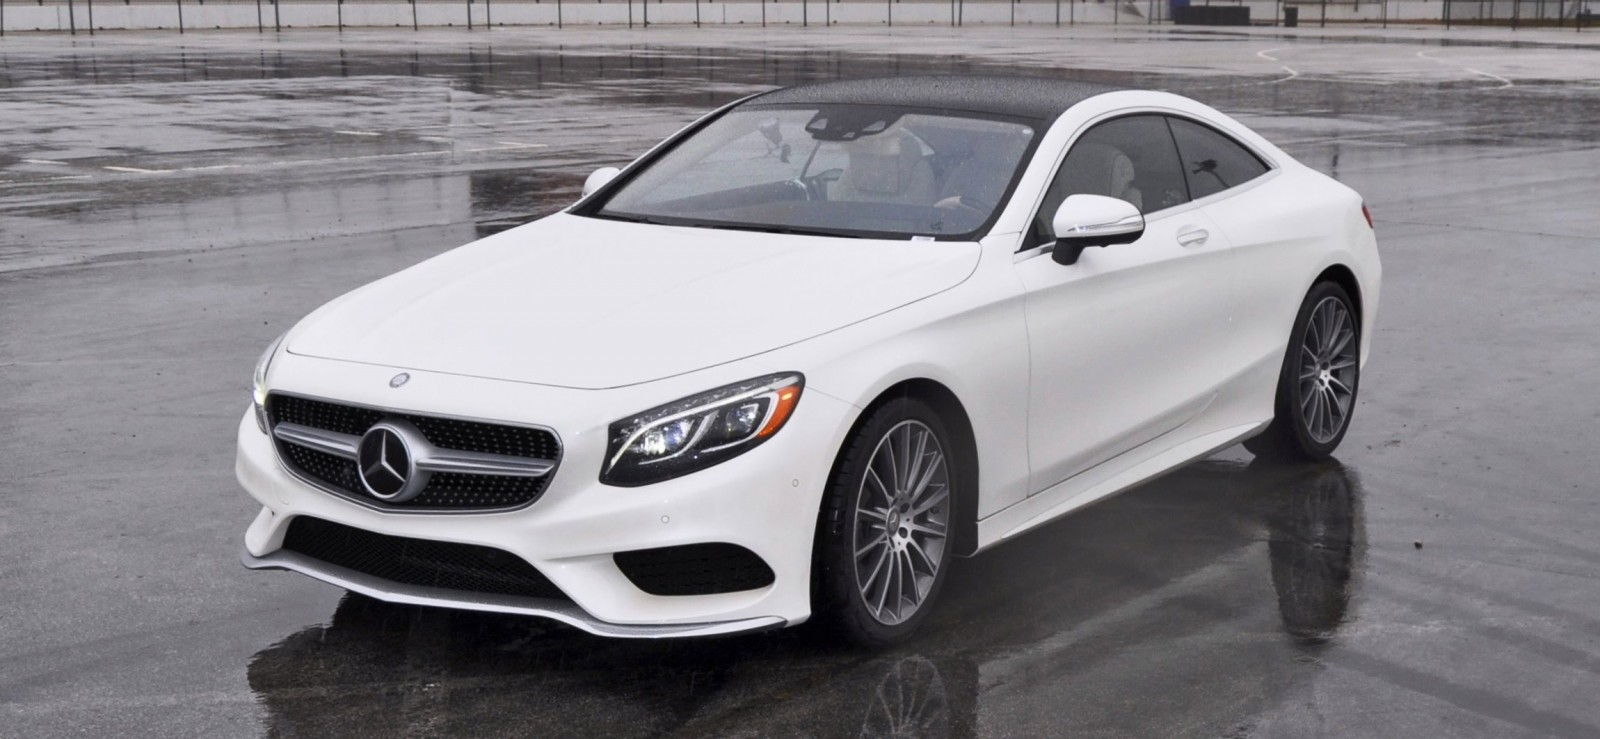 First drive review 2015 mercedes benz s550 coupe 64 for Mercedes benz s550 reviews